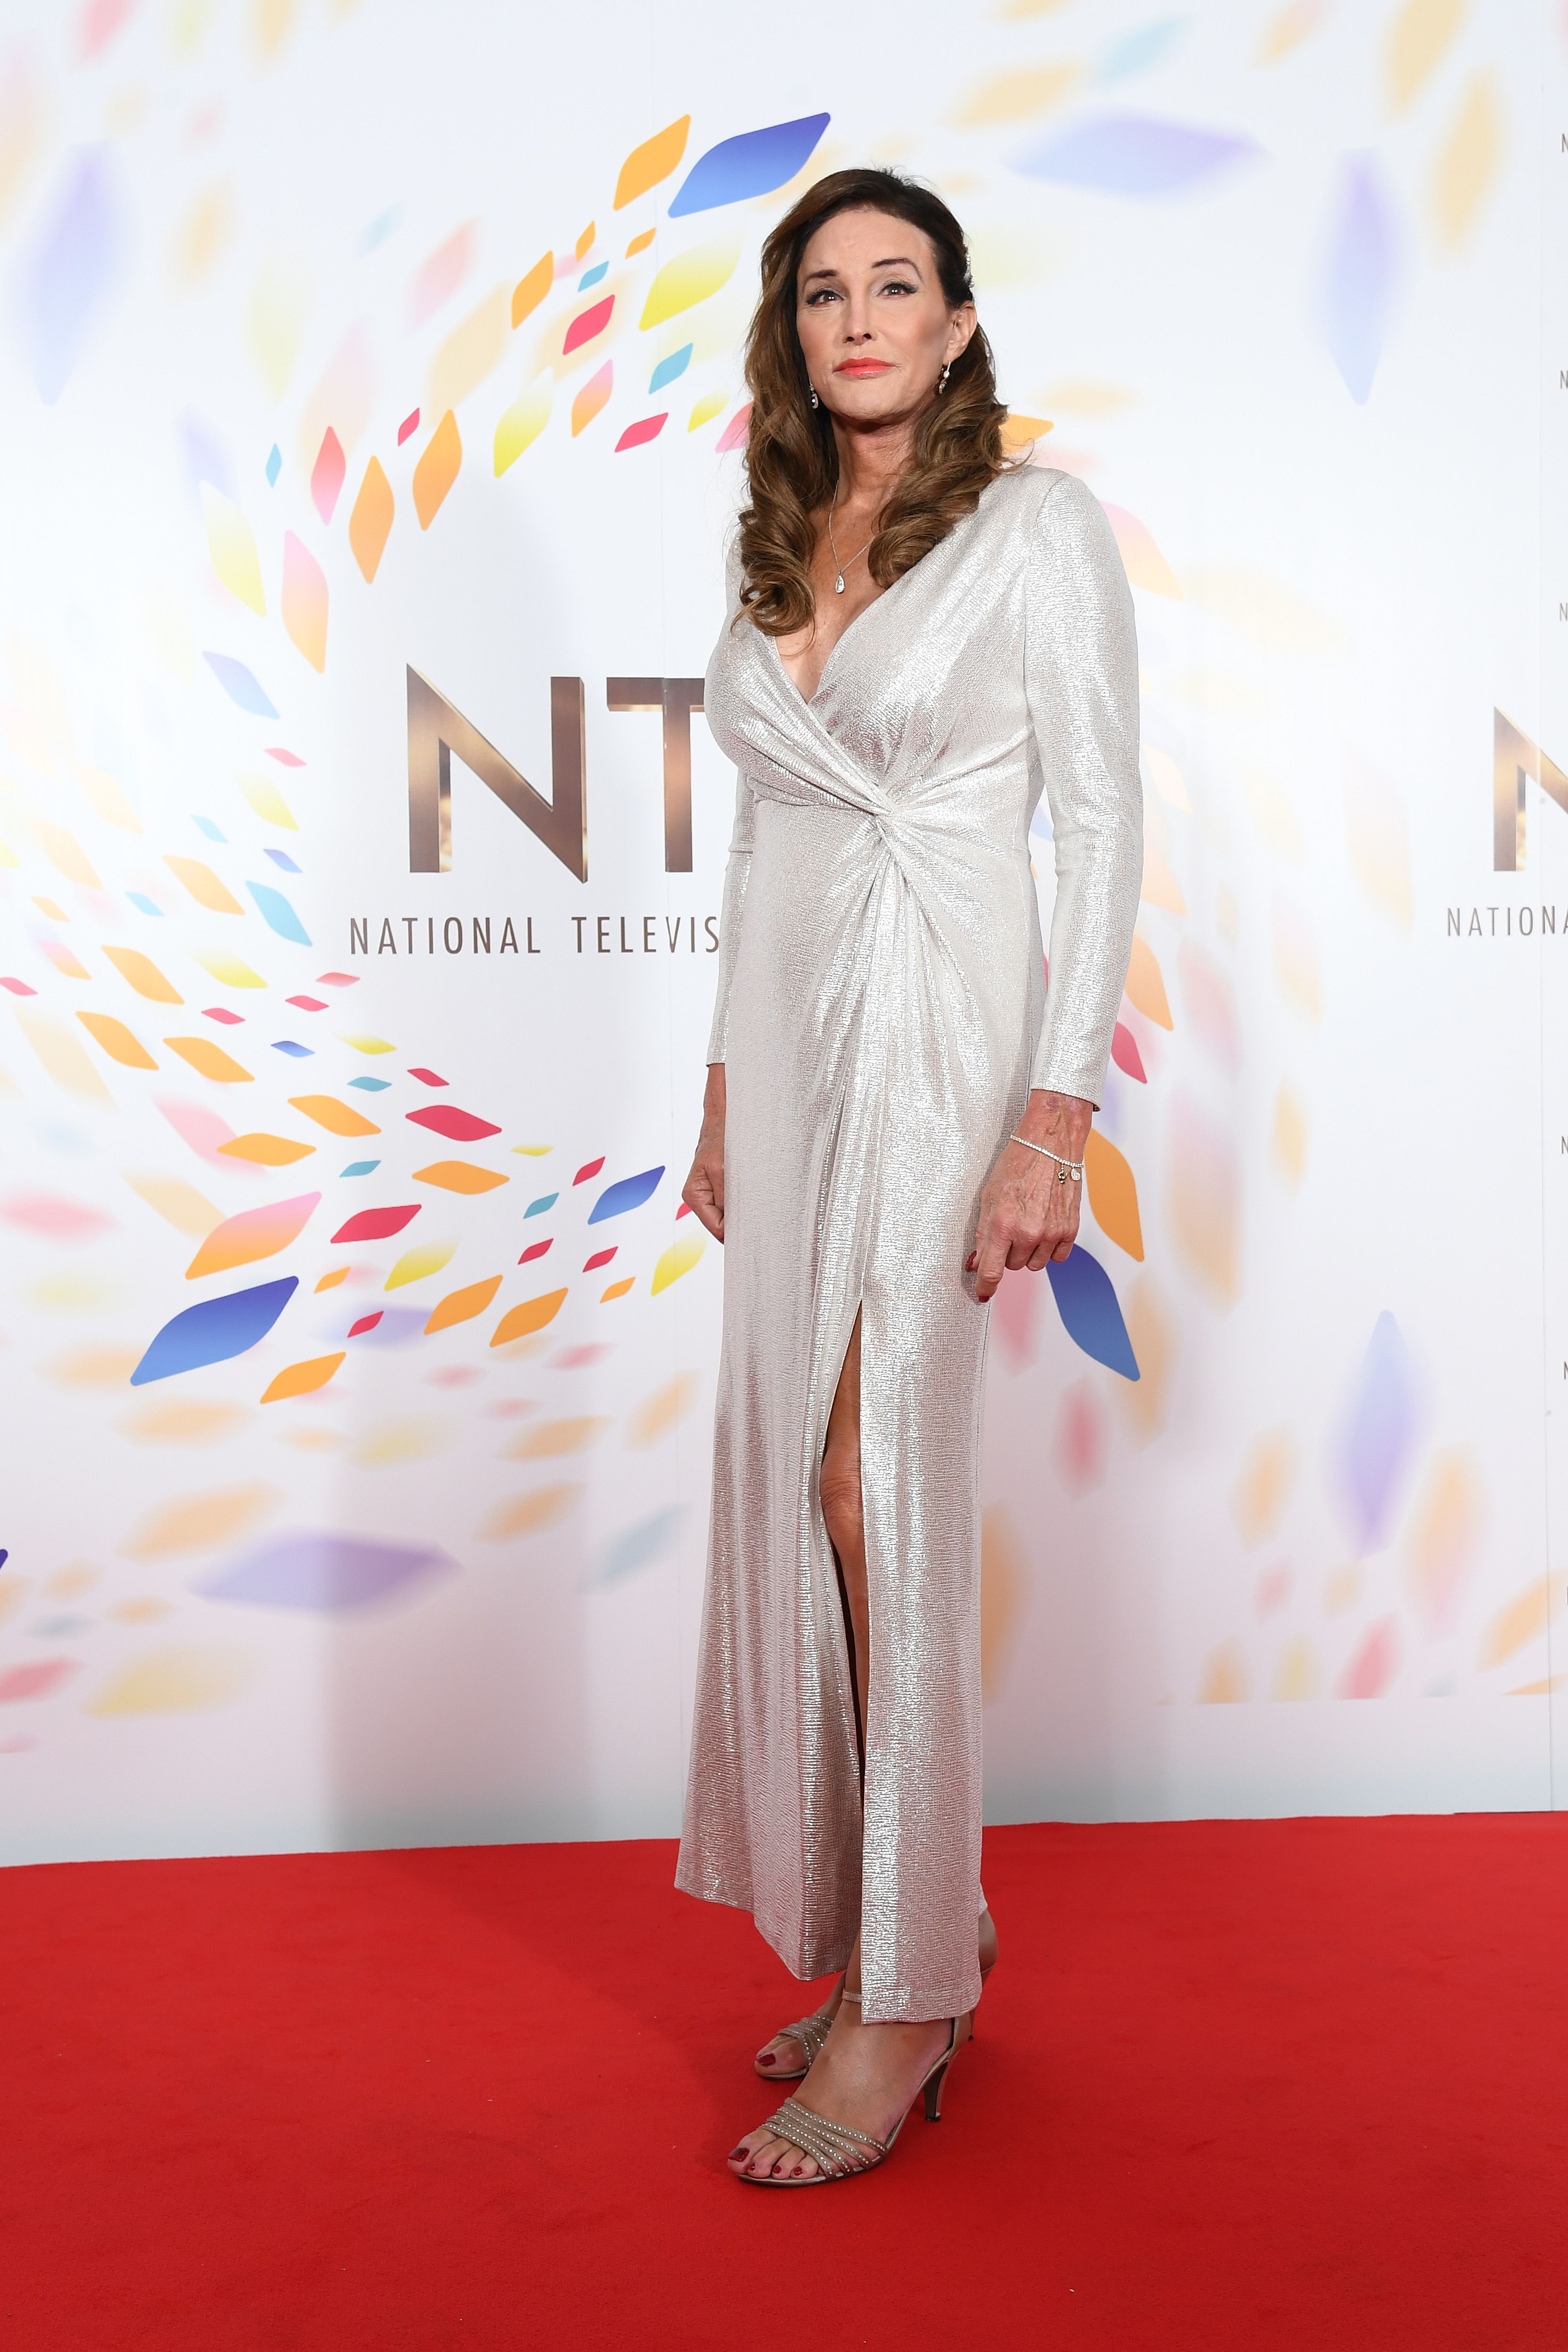 Caitlyn Jenner attends the National Television Awards 2020 at The O2 Arena on January 28, 2020 in London, England. | Source: Getty Images